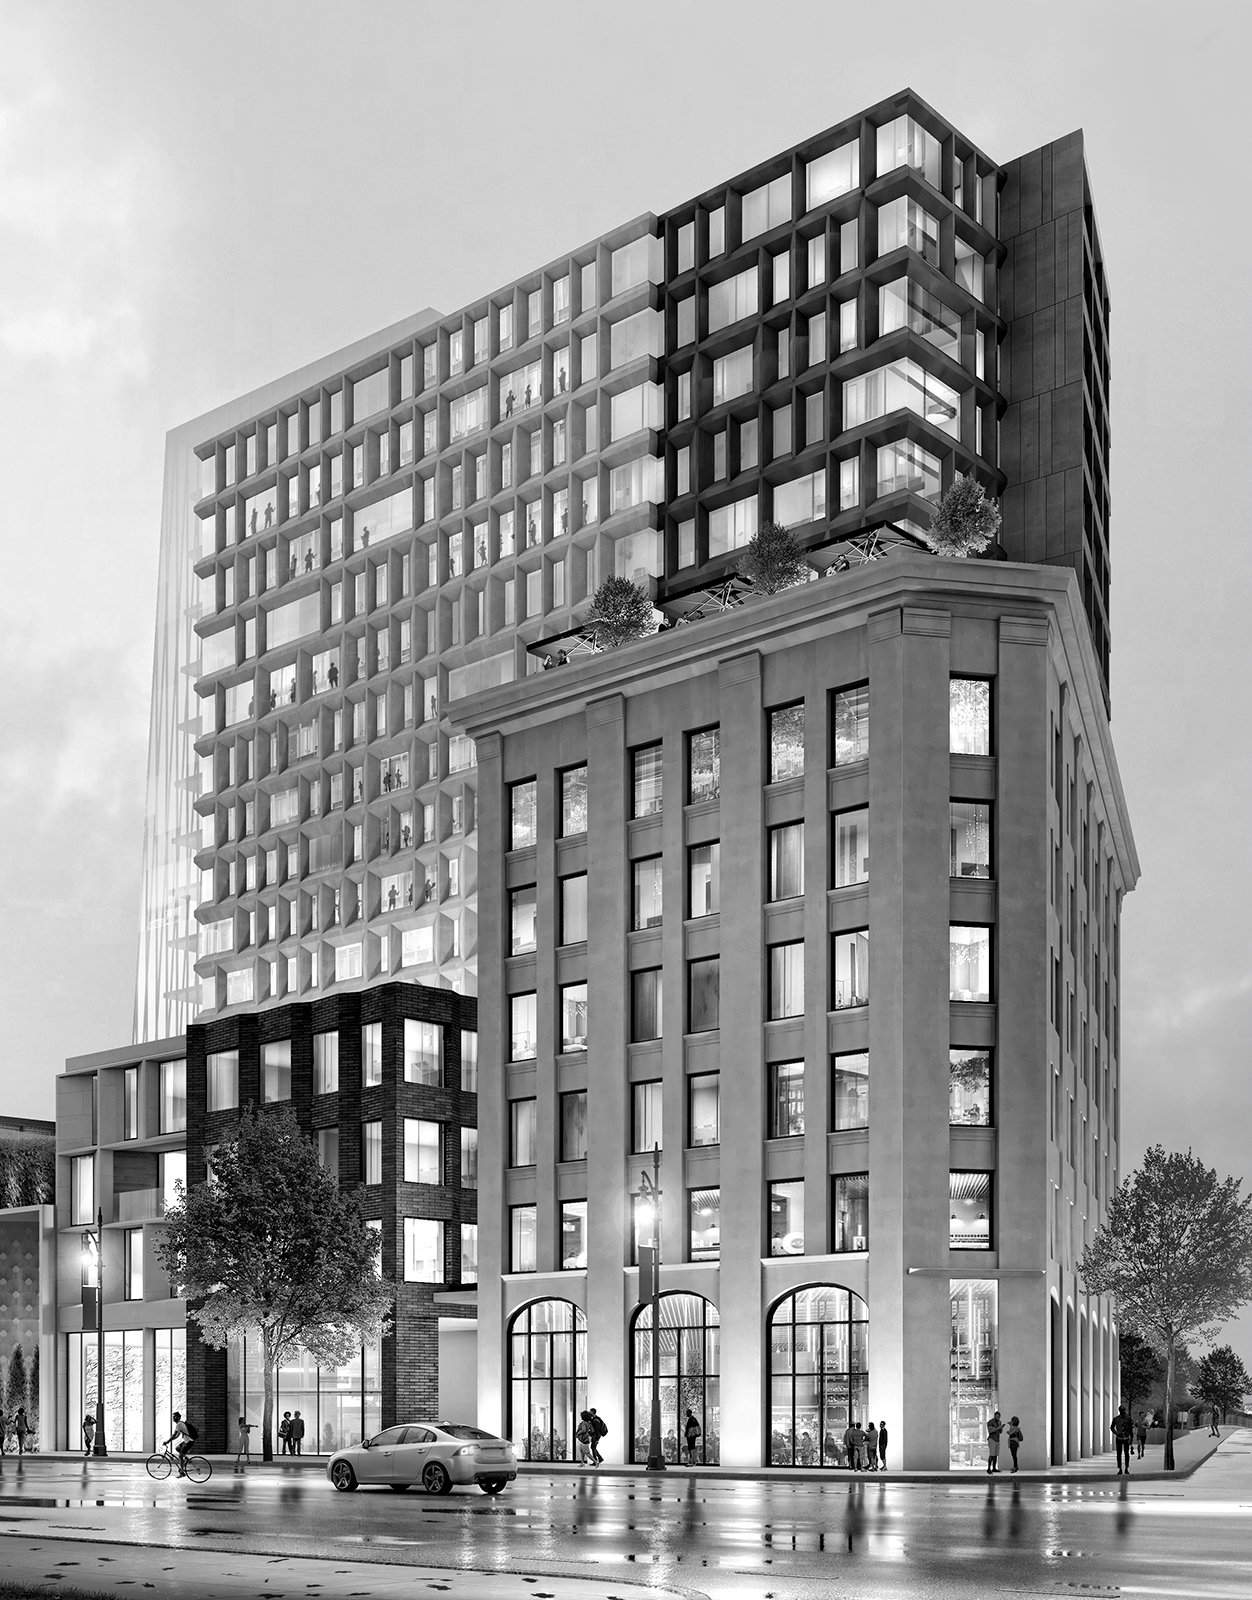 Rendering of the CPA Building and Hotel of the CPA Mixed-Use Development Project in Detroit Michigan Black and White